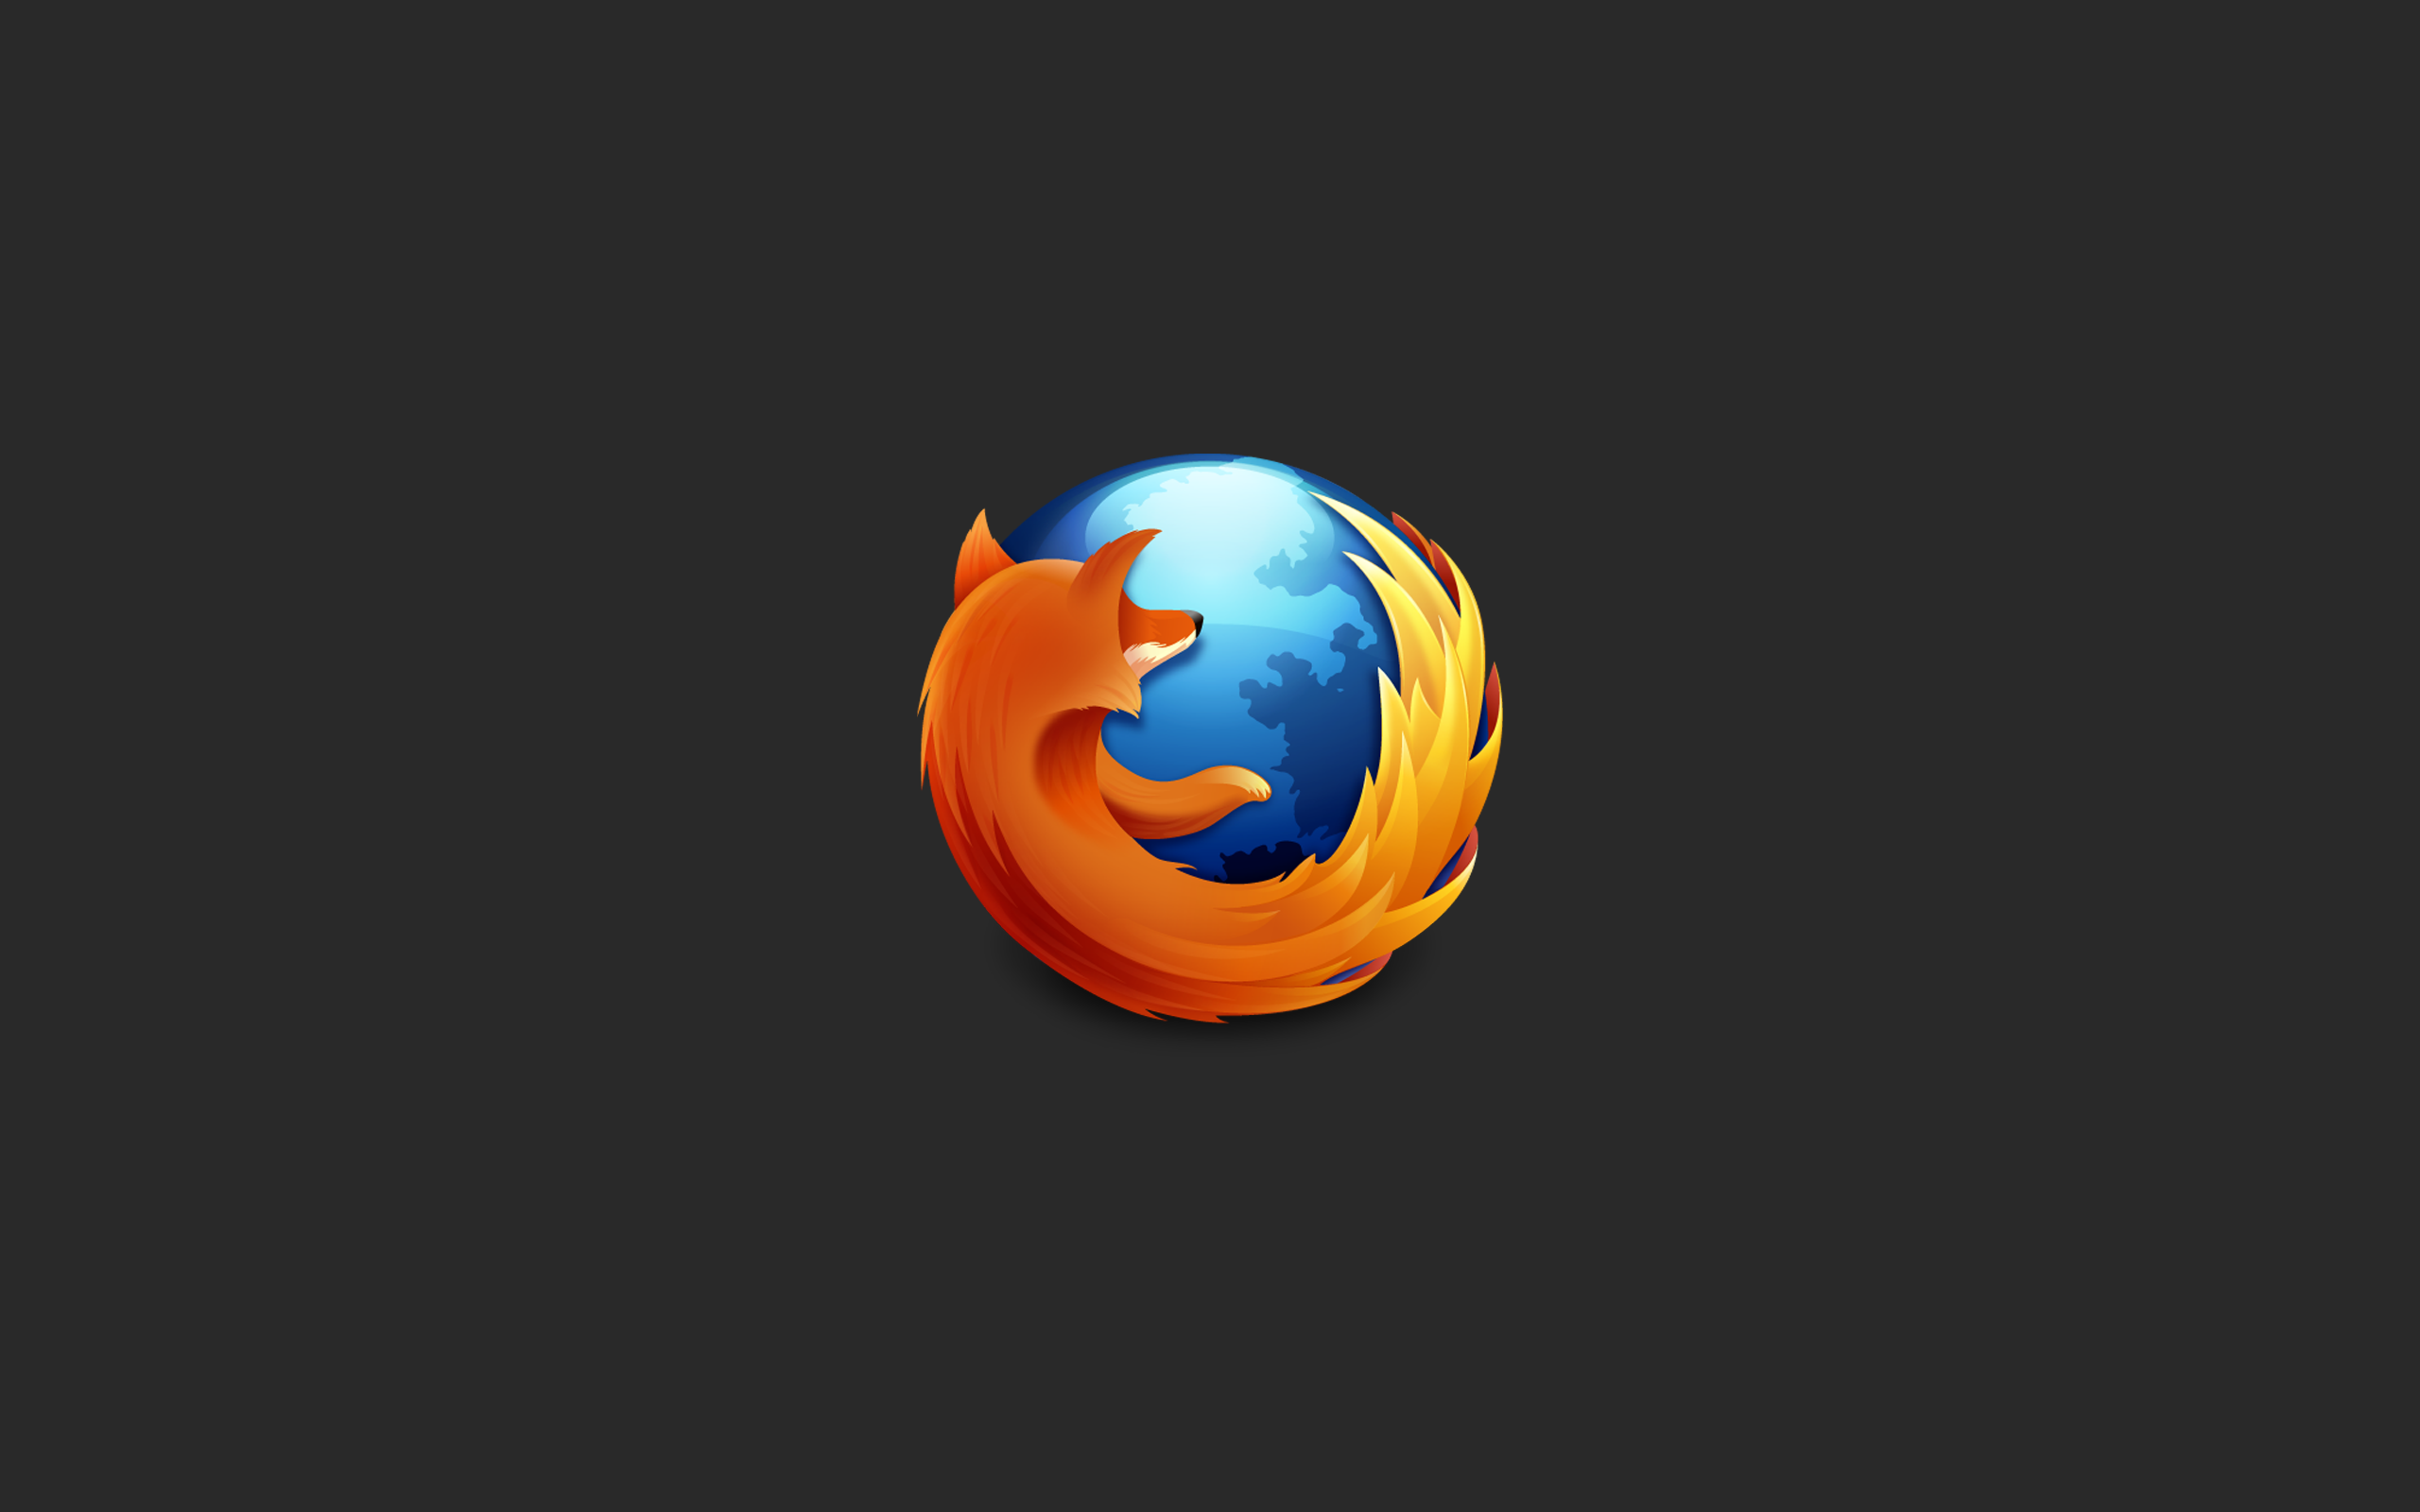 Firefox wallpapers can be easily downloaded from this page and you can feel free to download and use them.